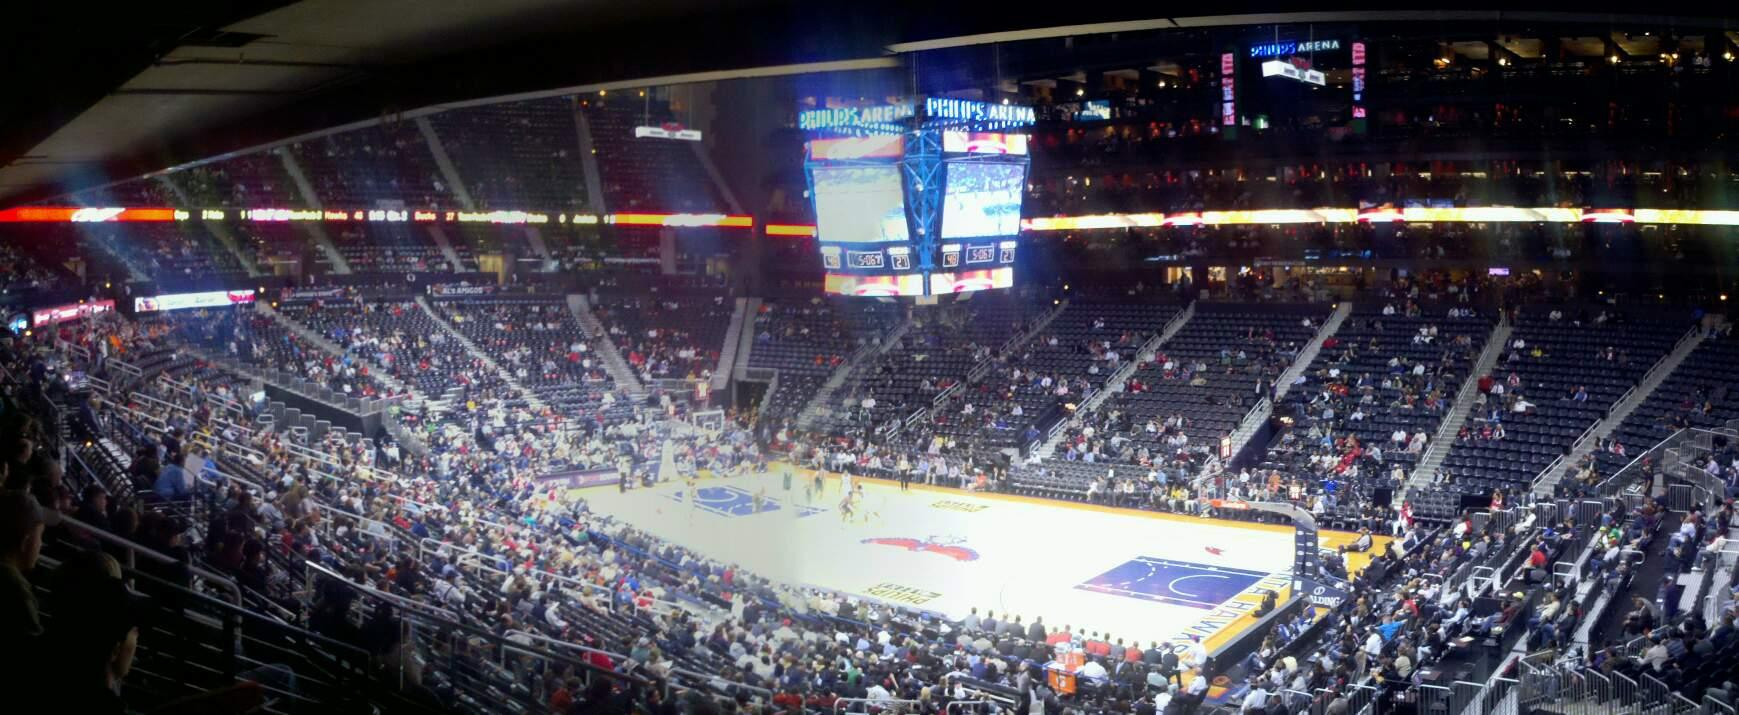 State Farm Arena Section 209 Row g Seat 2